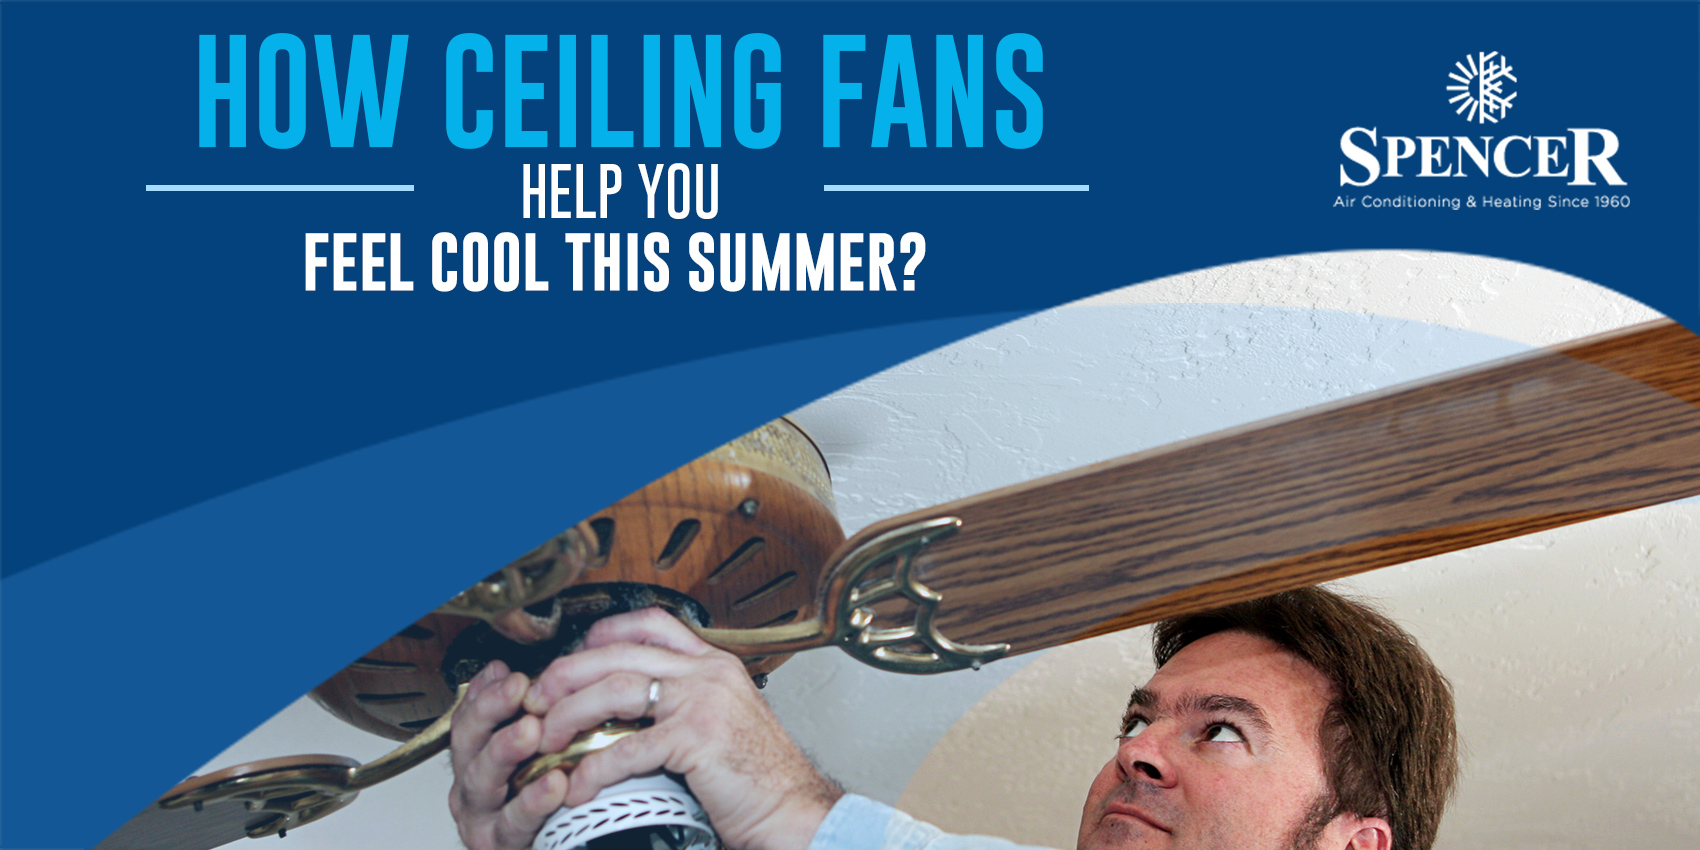 How Ceiling Fans Help You Feel Cool This Summer?